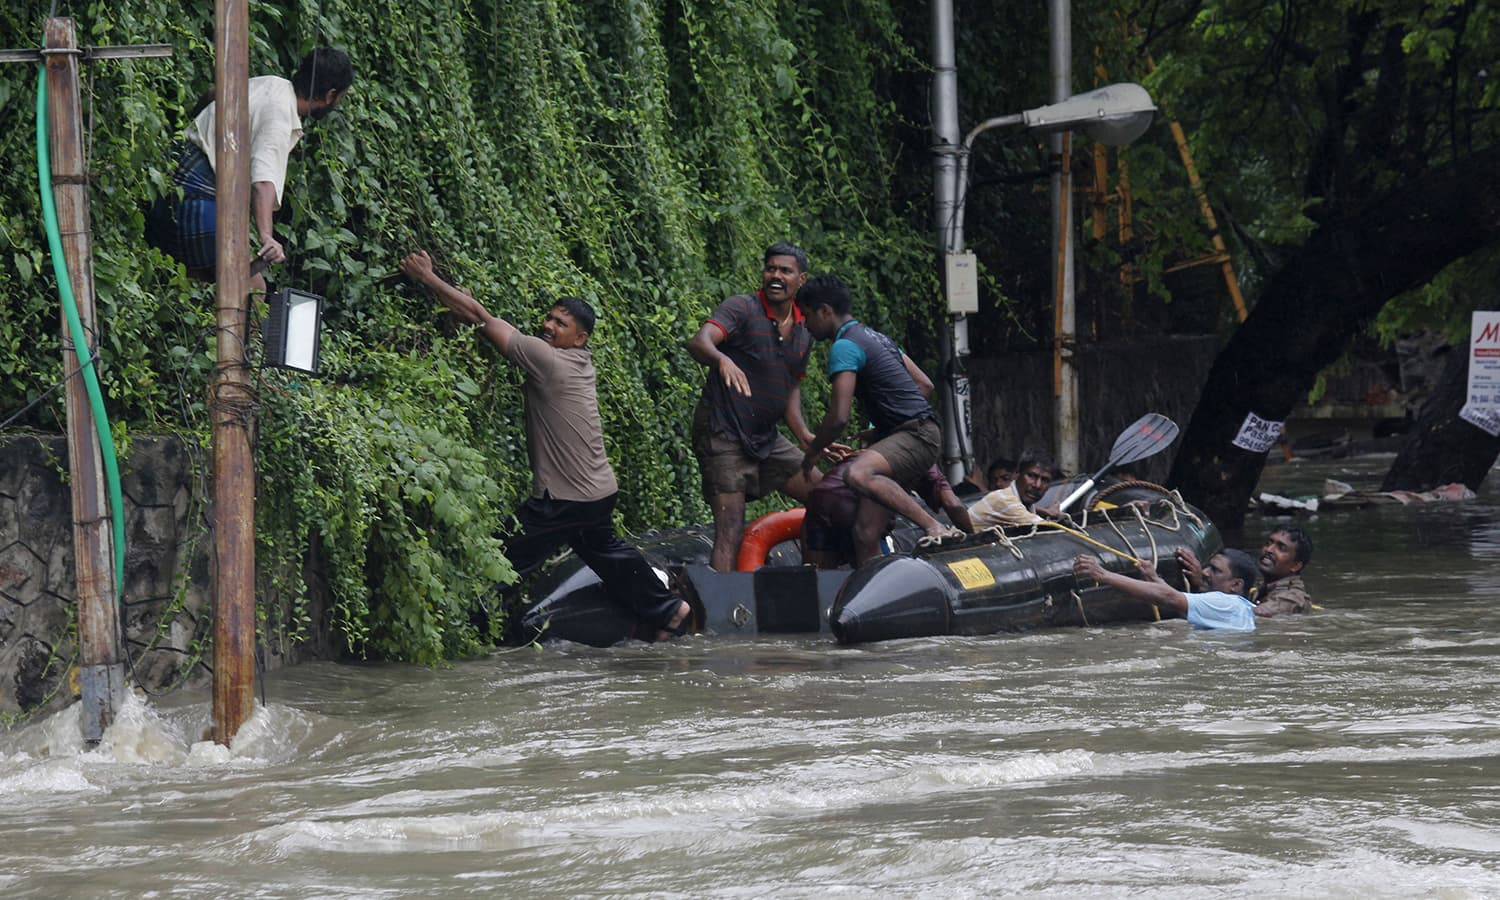 Rescuers try to evacuate a man stranded in the floods by an over-flowing Adyar River in Chennai, Tamil Nadu, India, Wednesday, Dec. 2, 2015. — AP